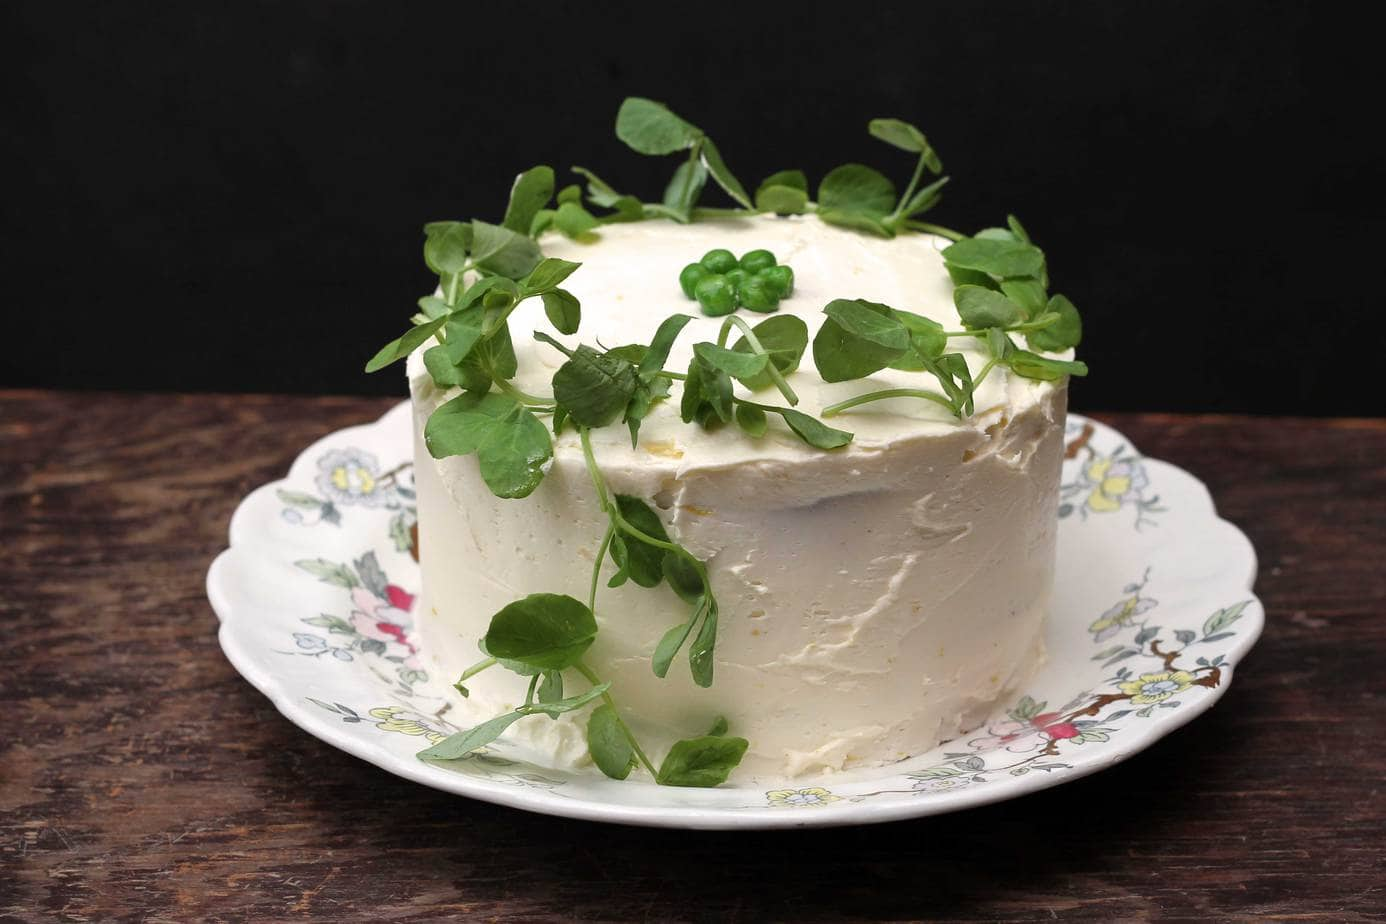 Cake on a vintage plate with pea shoots piled on top.